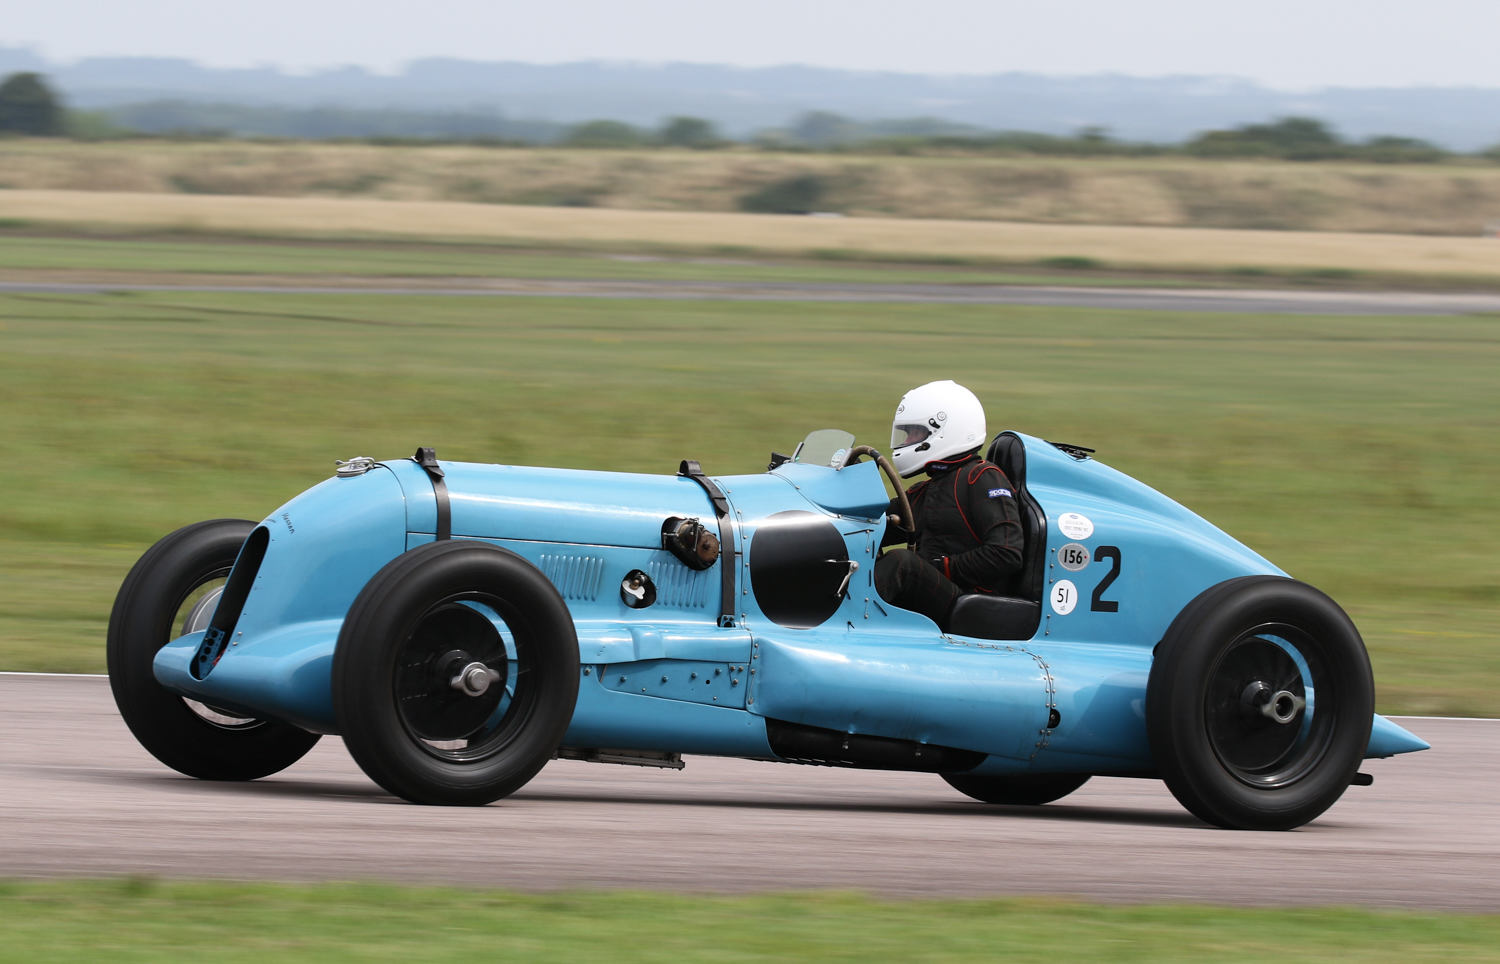 Another view of the magnificent Bentley barnato Hassan raced by David Ayre. Picasa